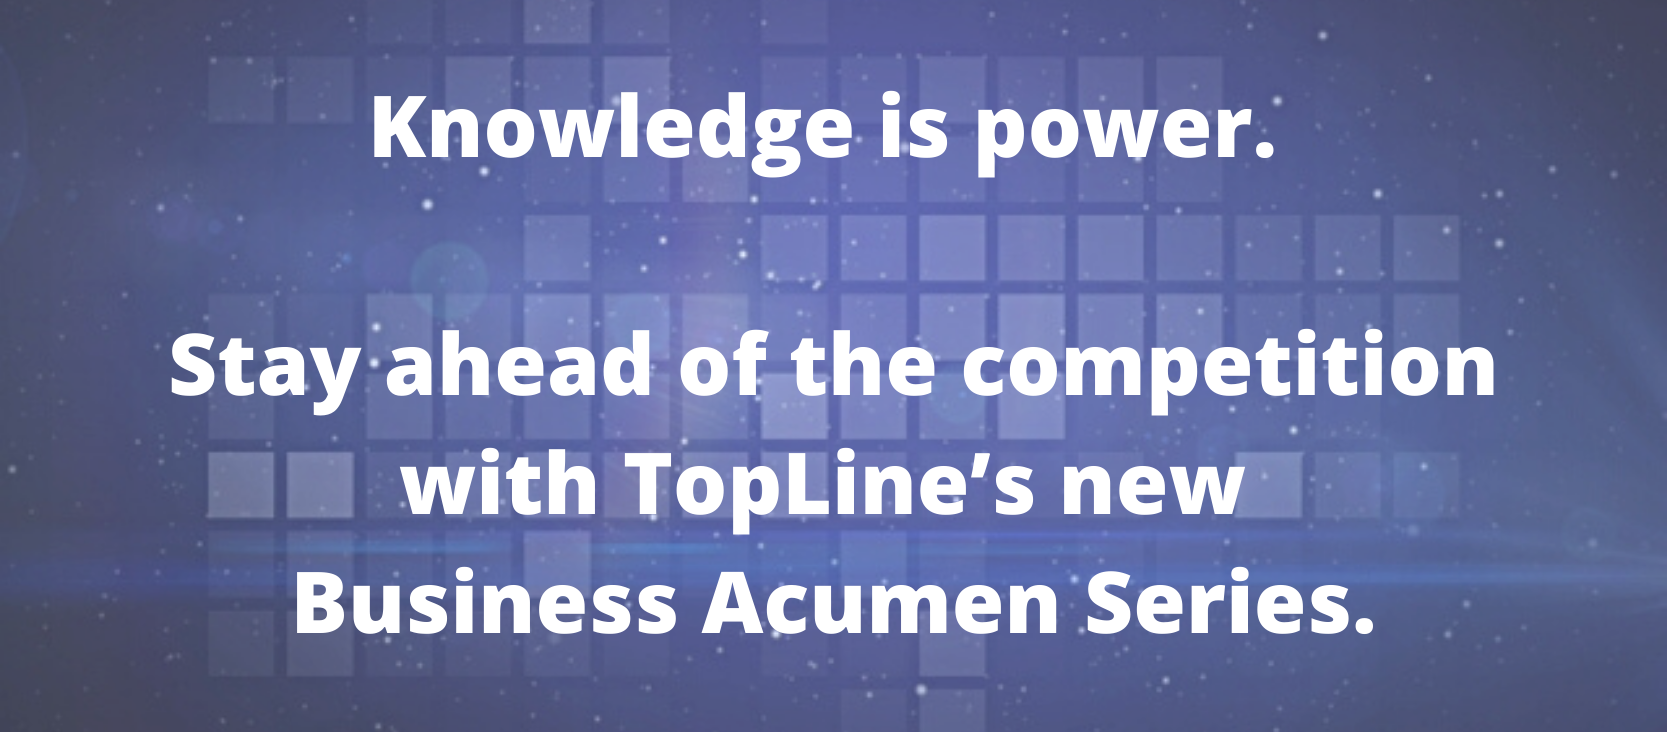 Knowledge is power. Stay ahead of the competition with TopLine's new Business Acumen Series.